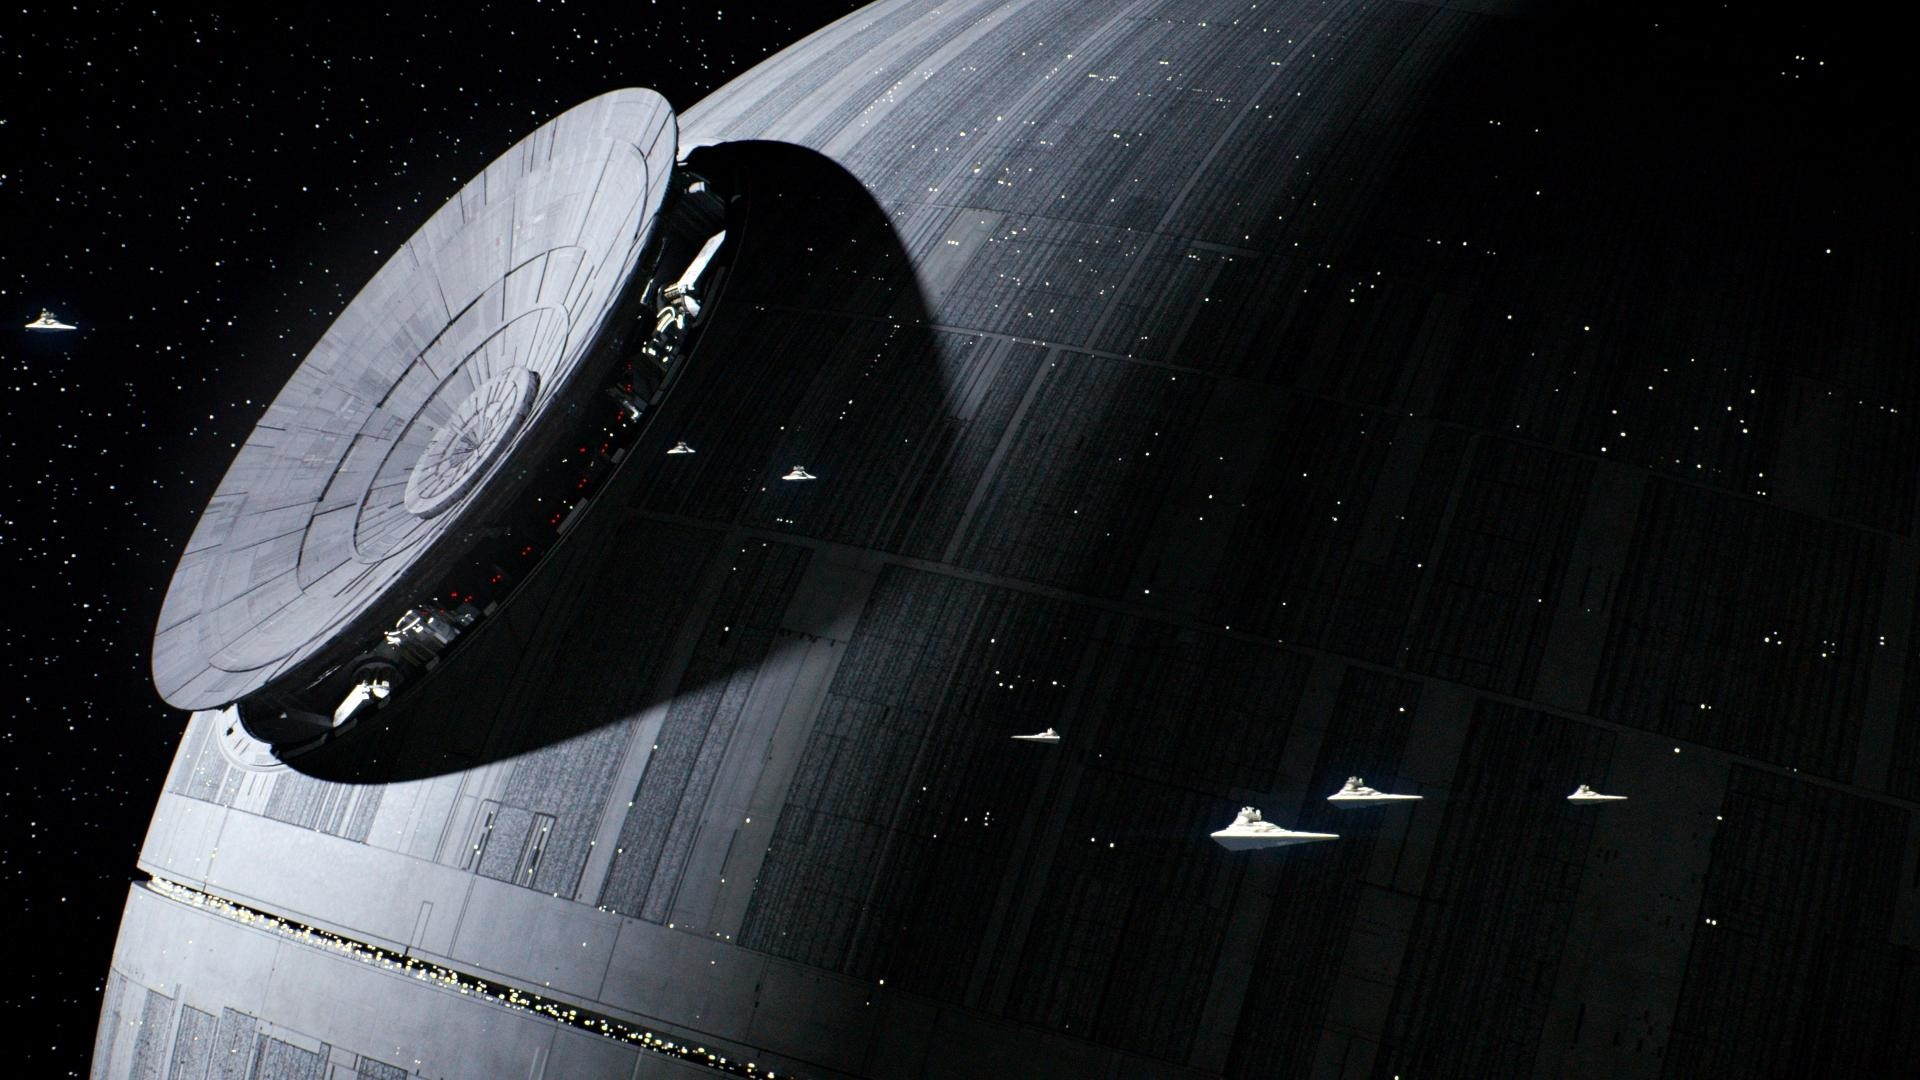 1920x1080 Star Wars: Rogue One Death Star Wallpaper